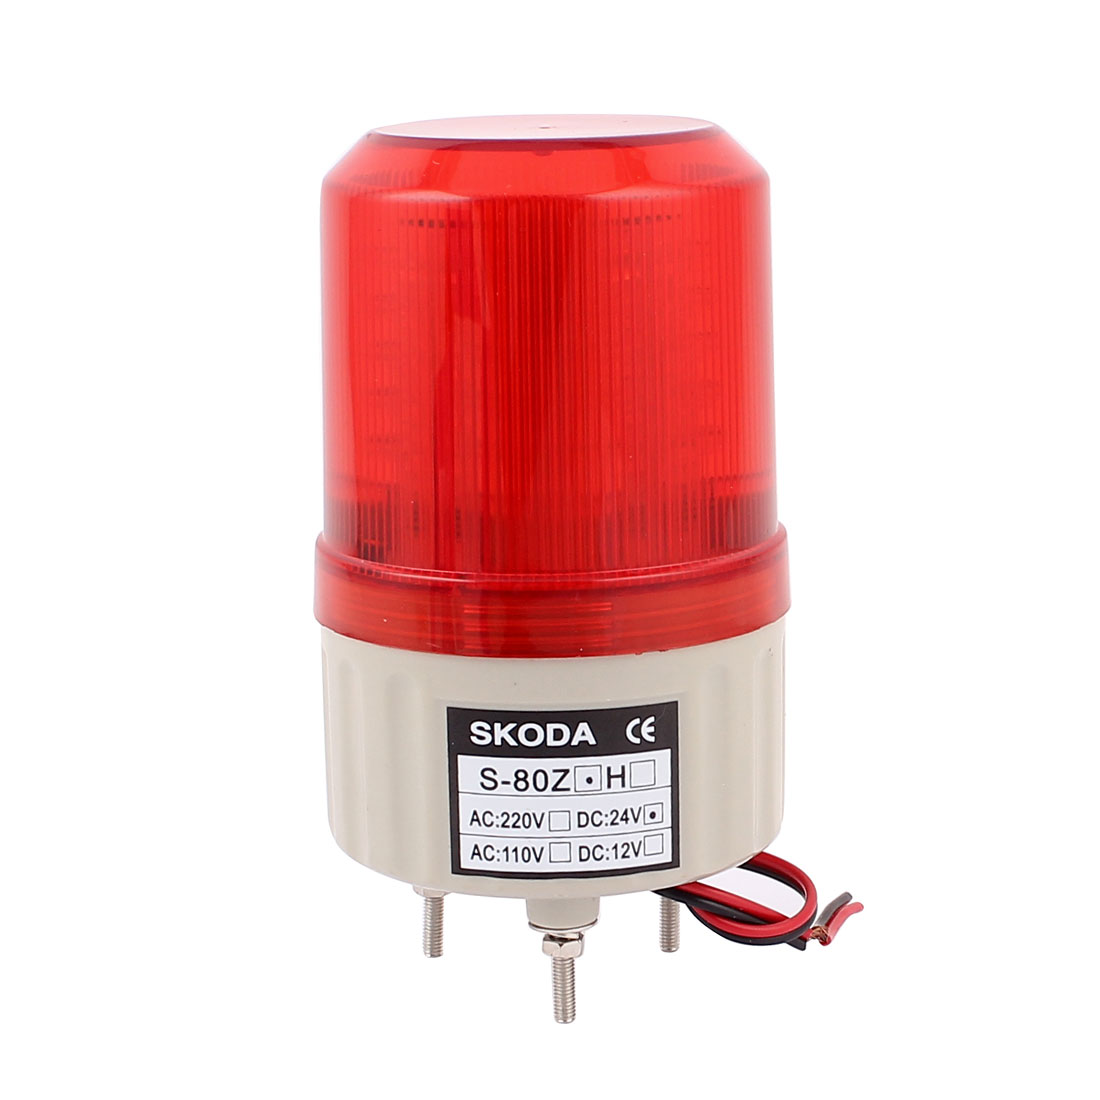 DC 24V Industrial Tower Blinking Signal Red Lamp Alarm Light Buzzer